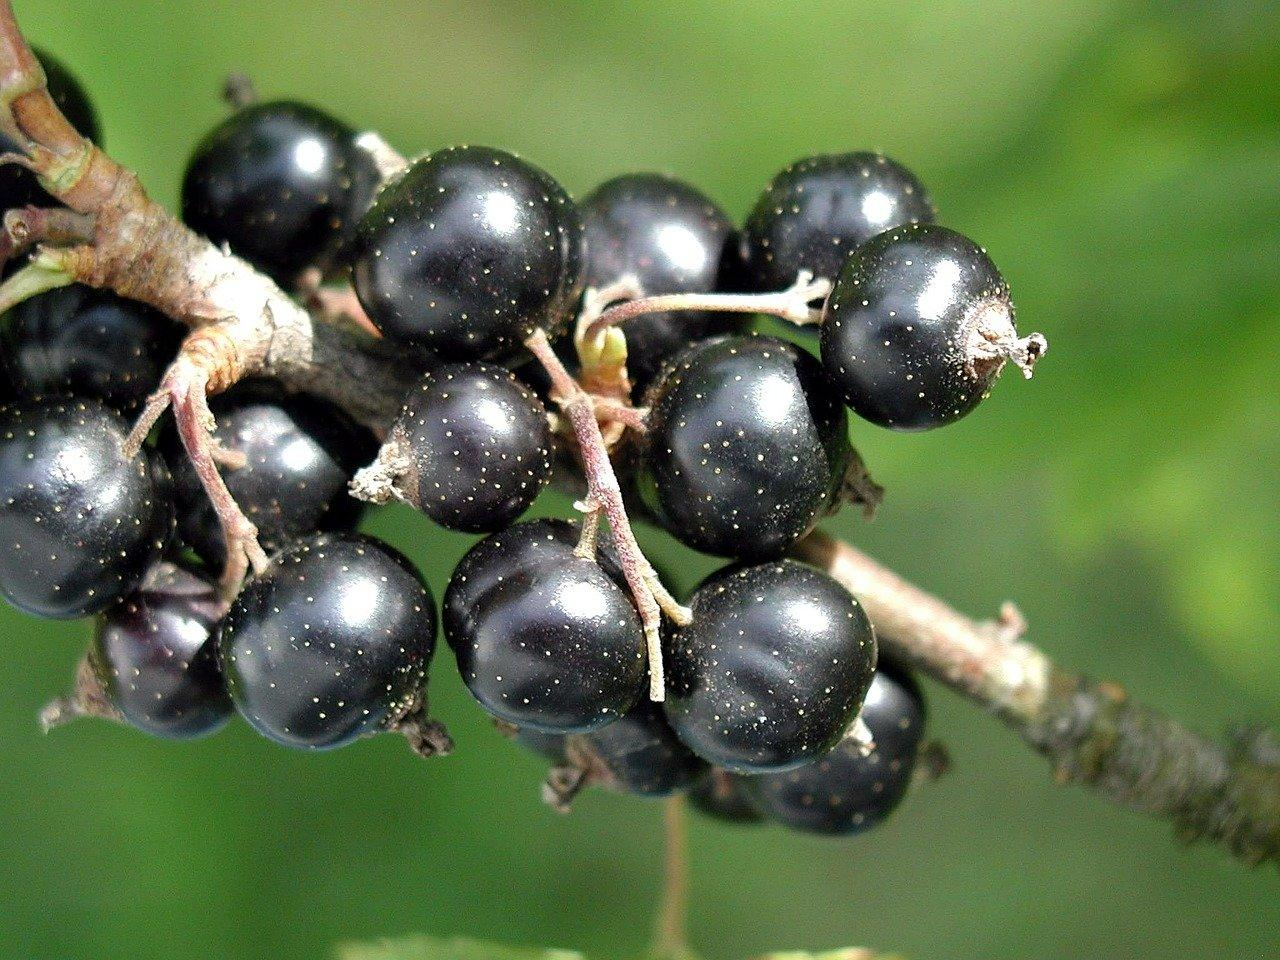 blackcurrant can help boost body's anti-viral defenses